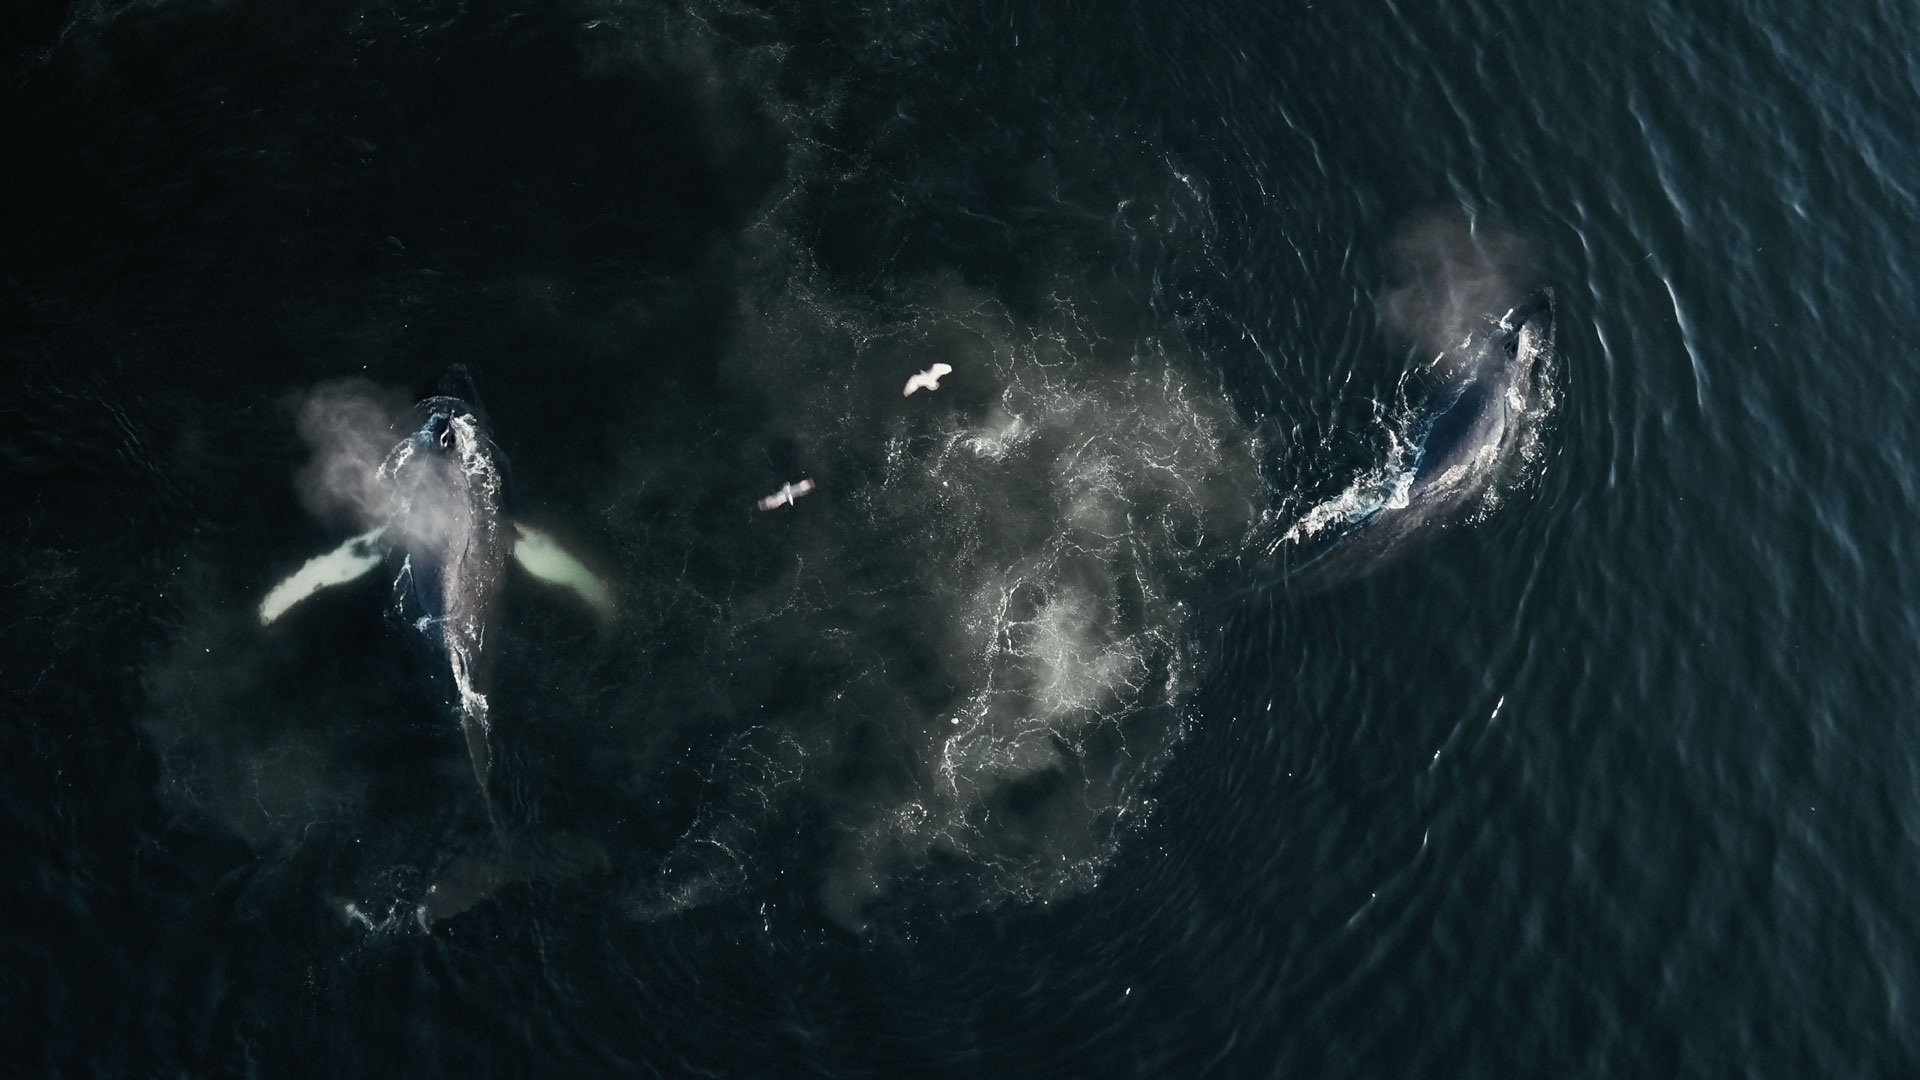 Reel Causes partners with VIFF to present The Whale and the Raven